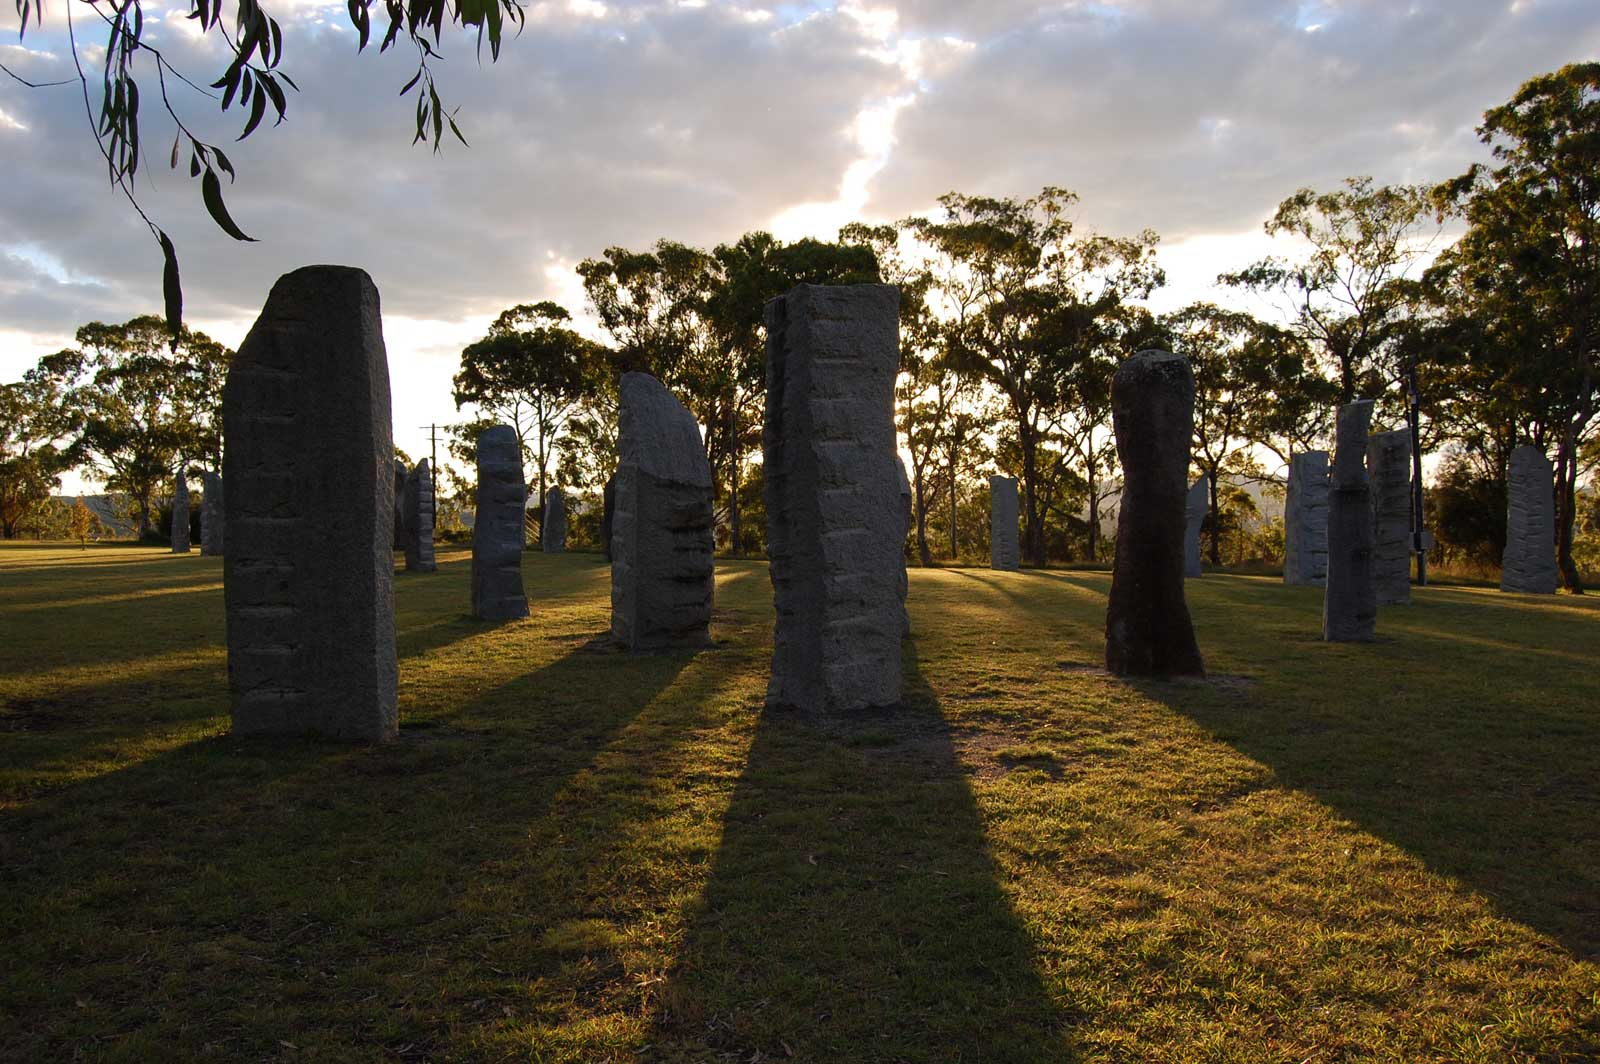 Glen Innes Australia  city photos gallery : glen innes standing stones the australian answer to stonehenge ...